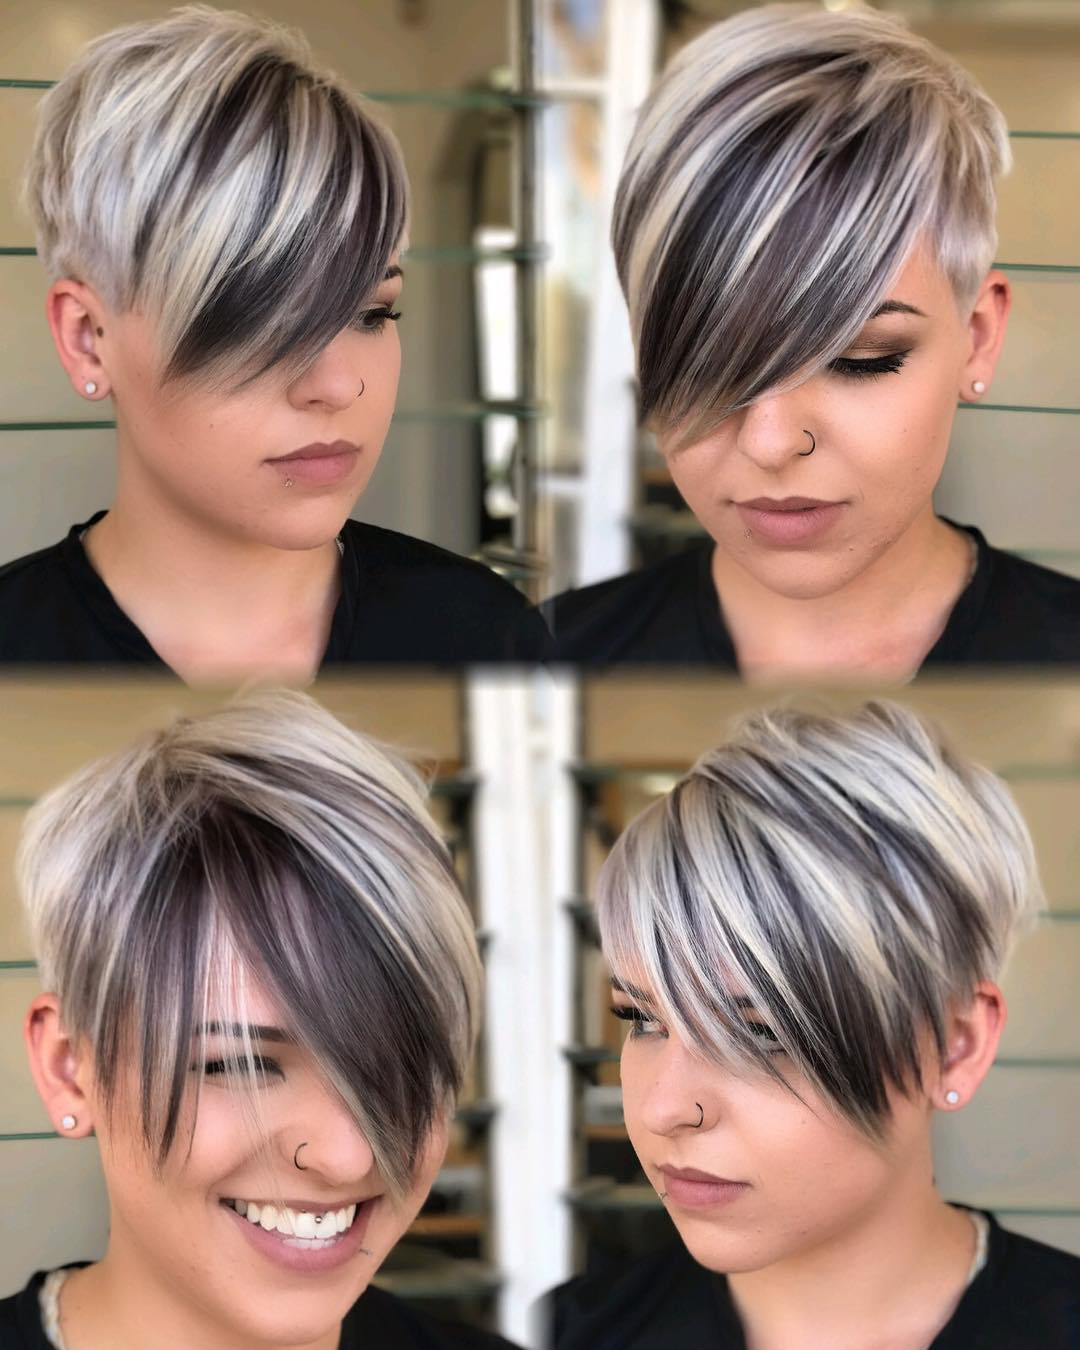 Pixie with Long Bangs for a Round Face